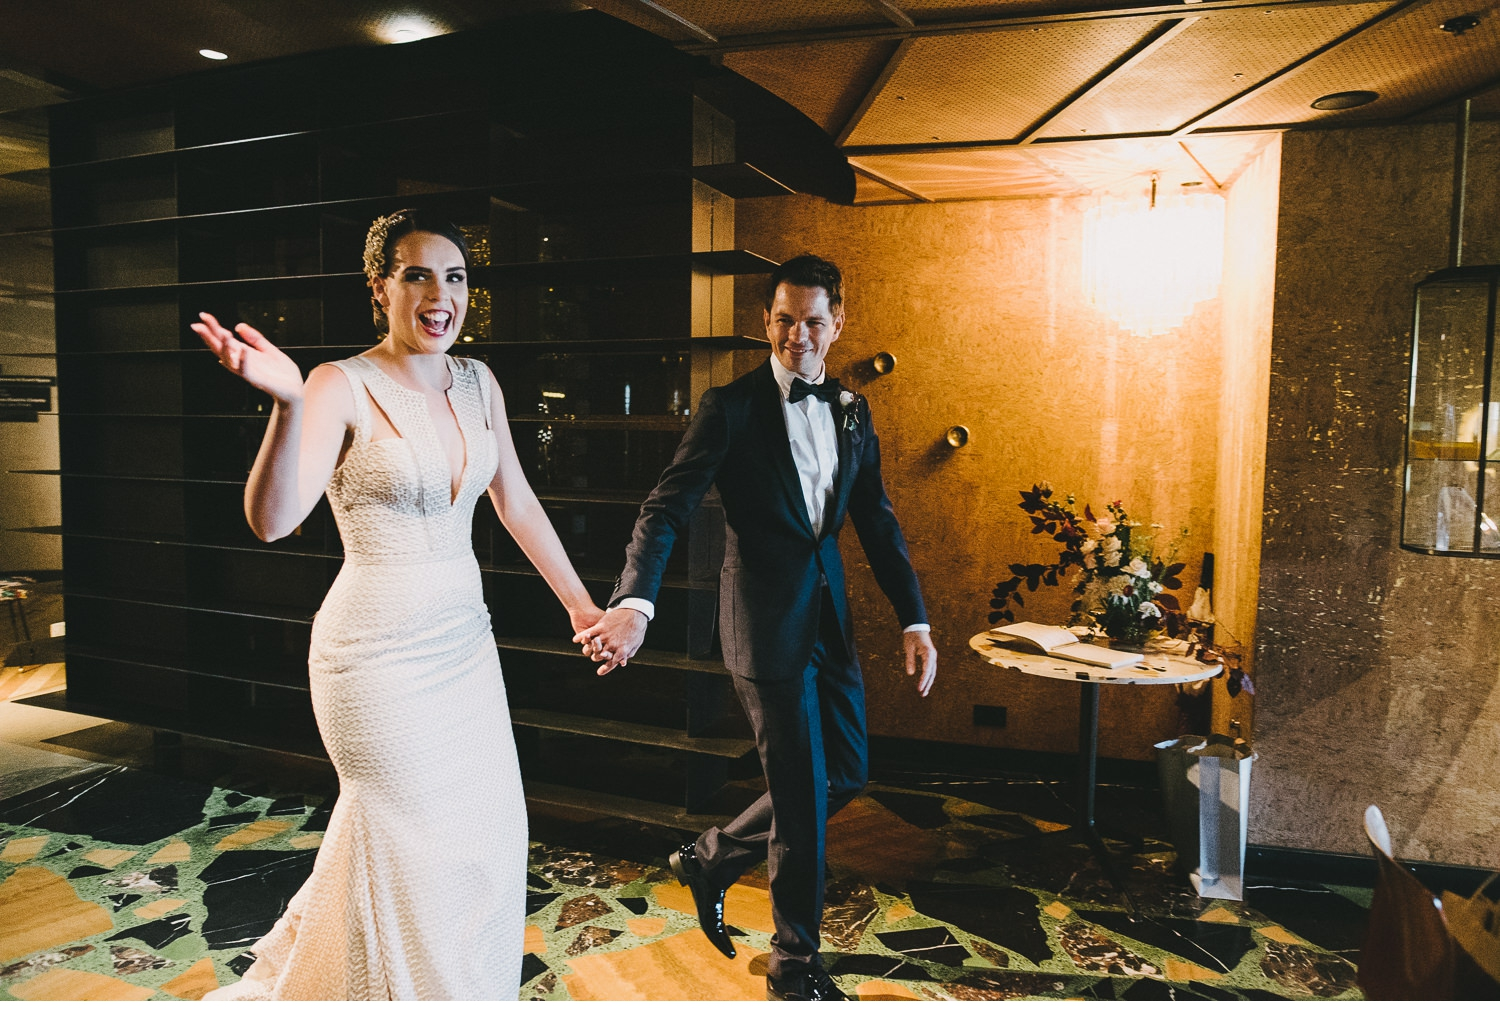 Morgan Roberts Photography_Wedding_nishi gallery hotel hotel_Jay and Lucy 3621.jpg